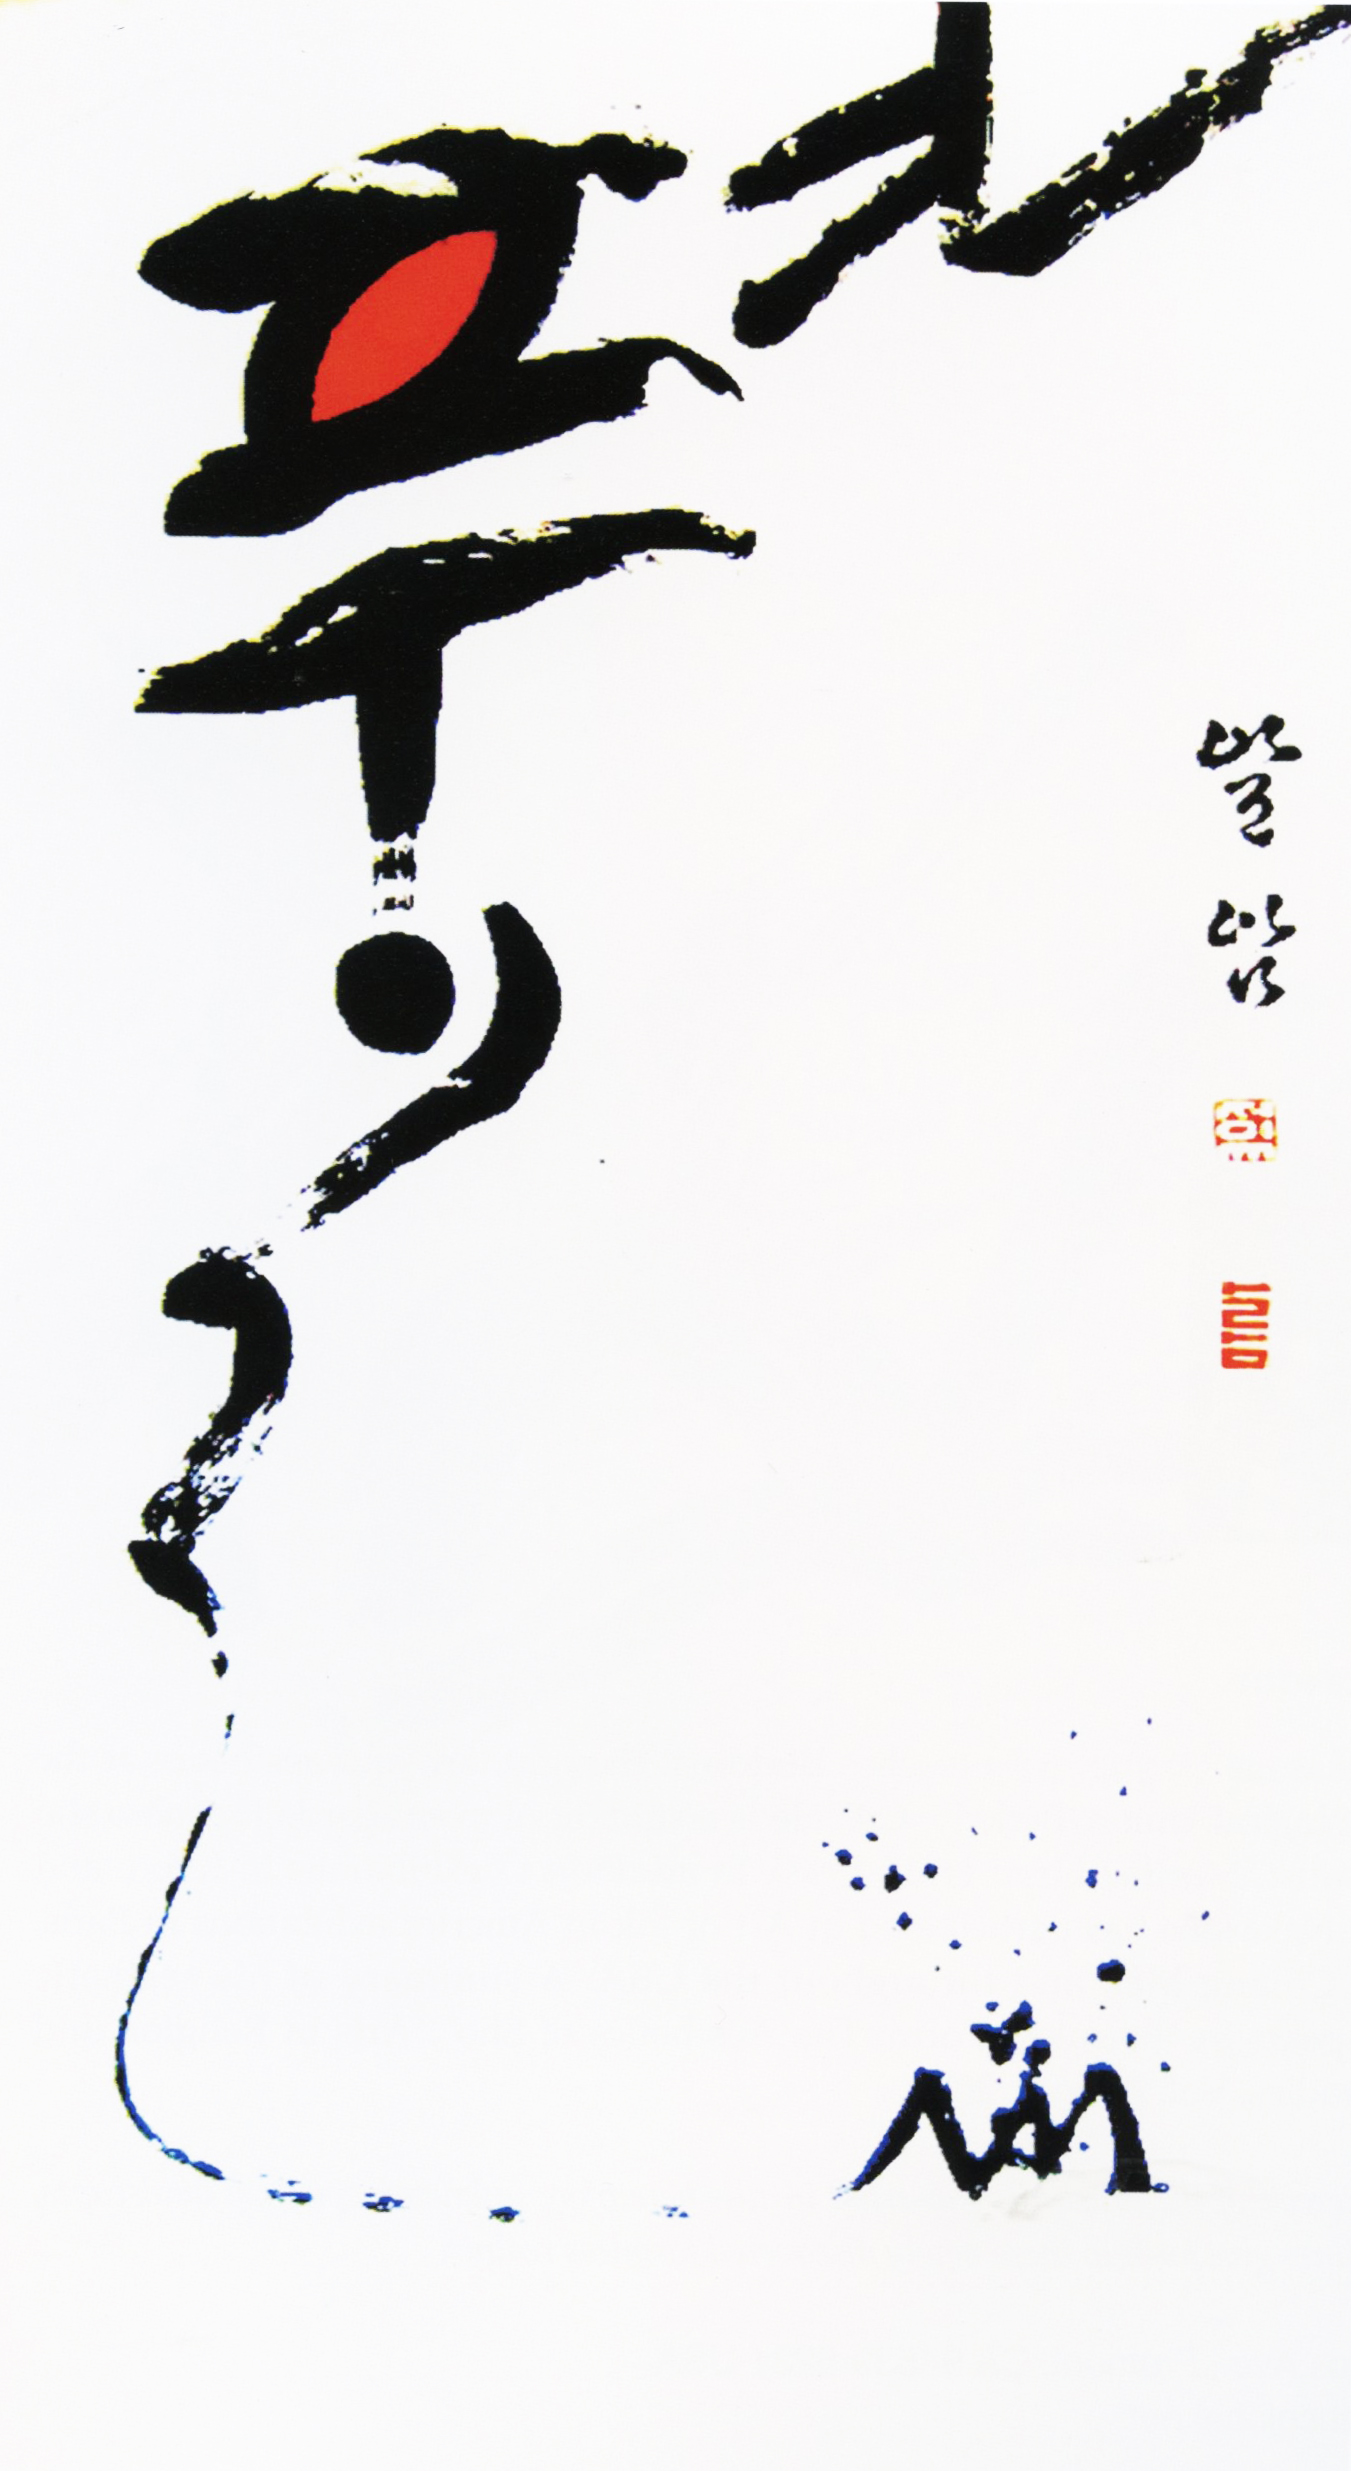 Aram S Hangeul Calligraphy At The Godwin Ternbach Museum